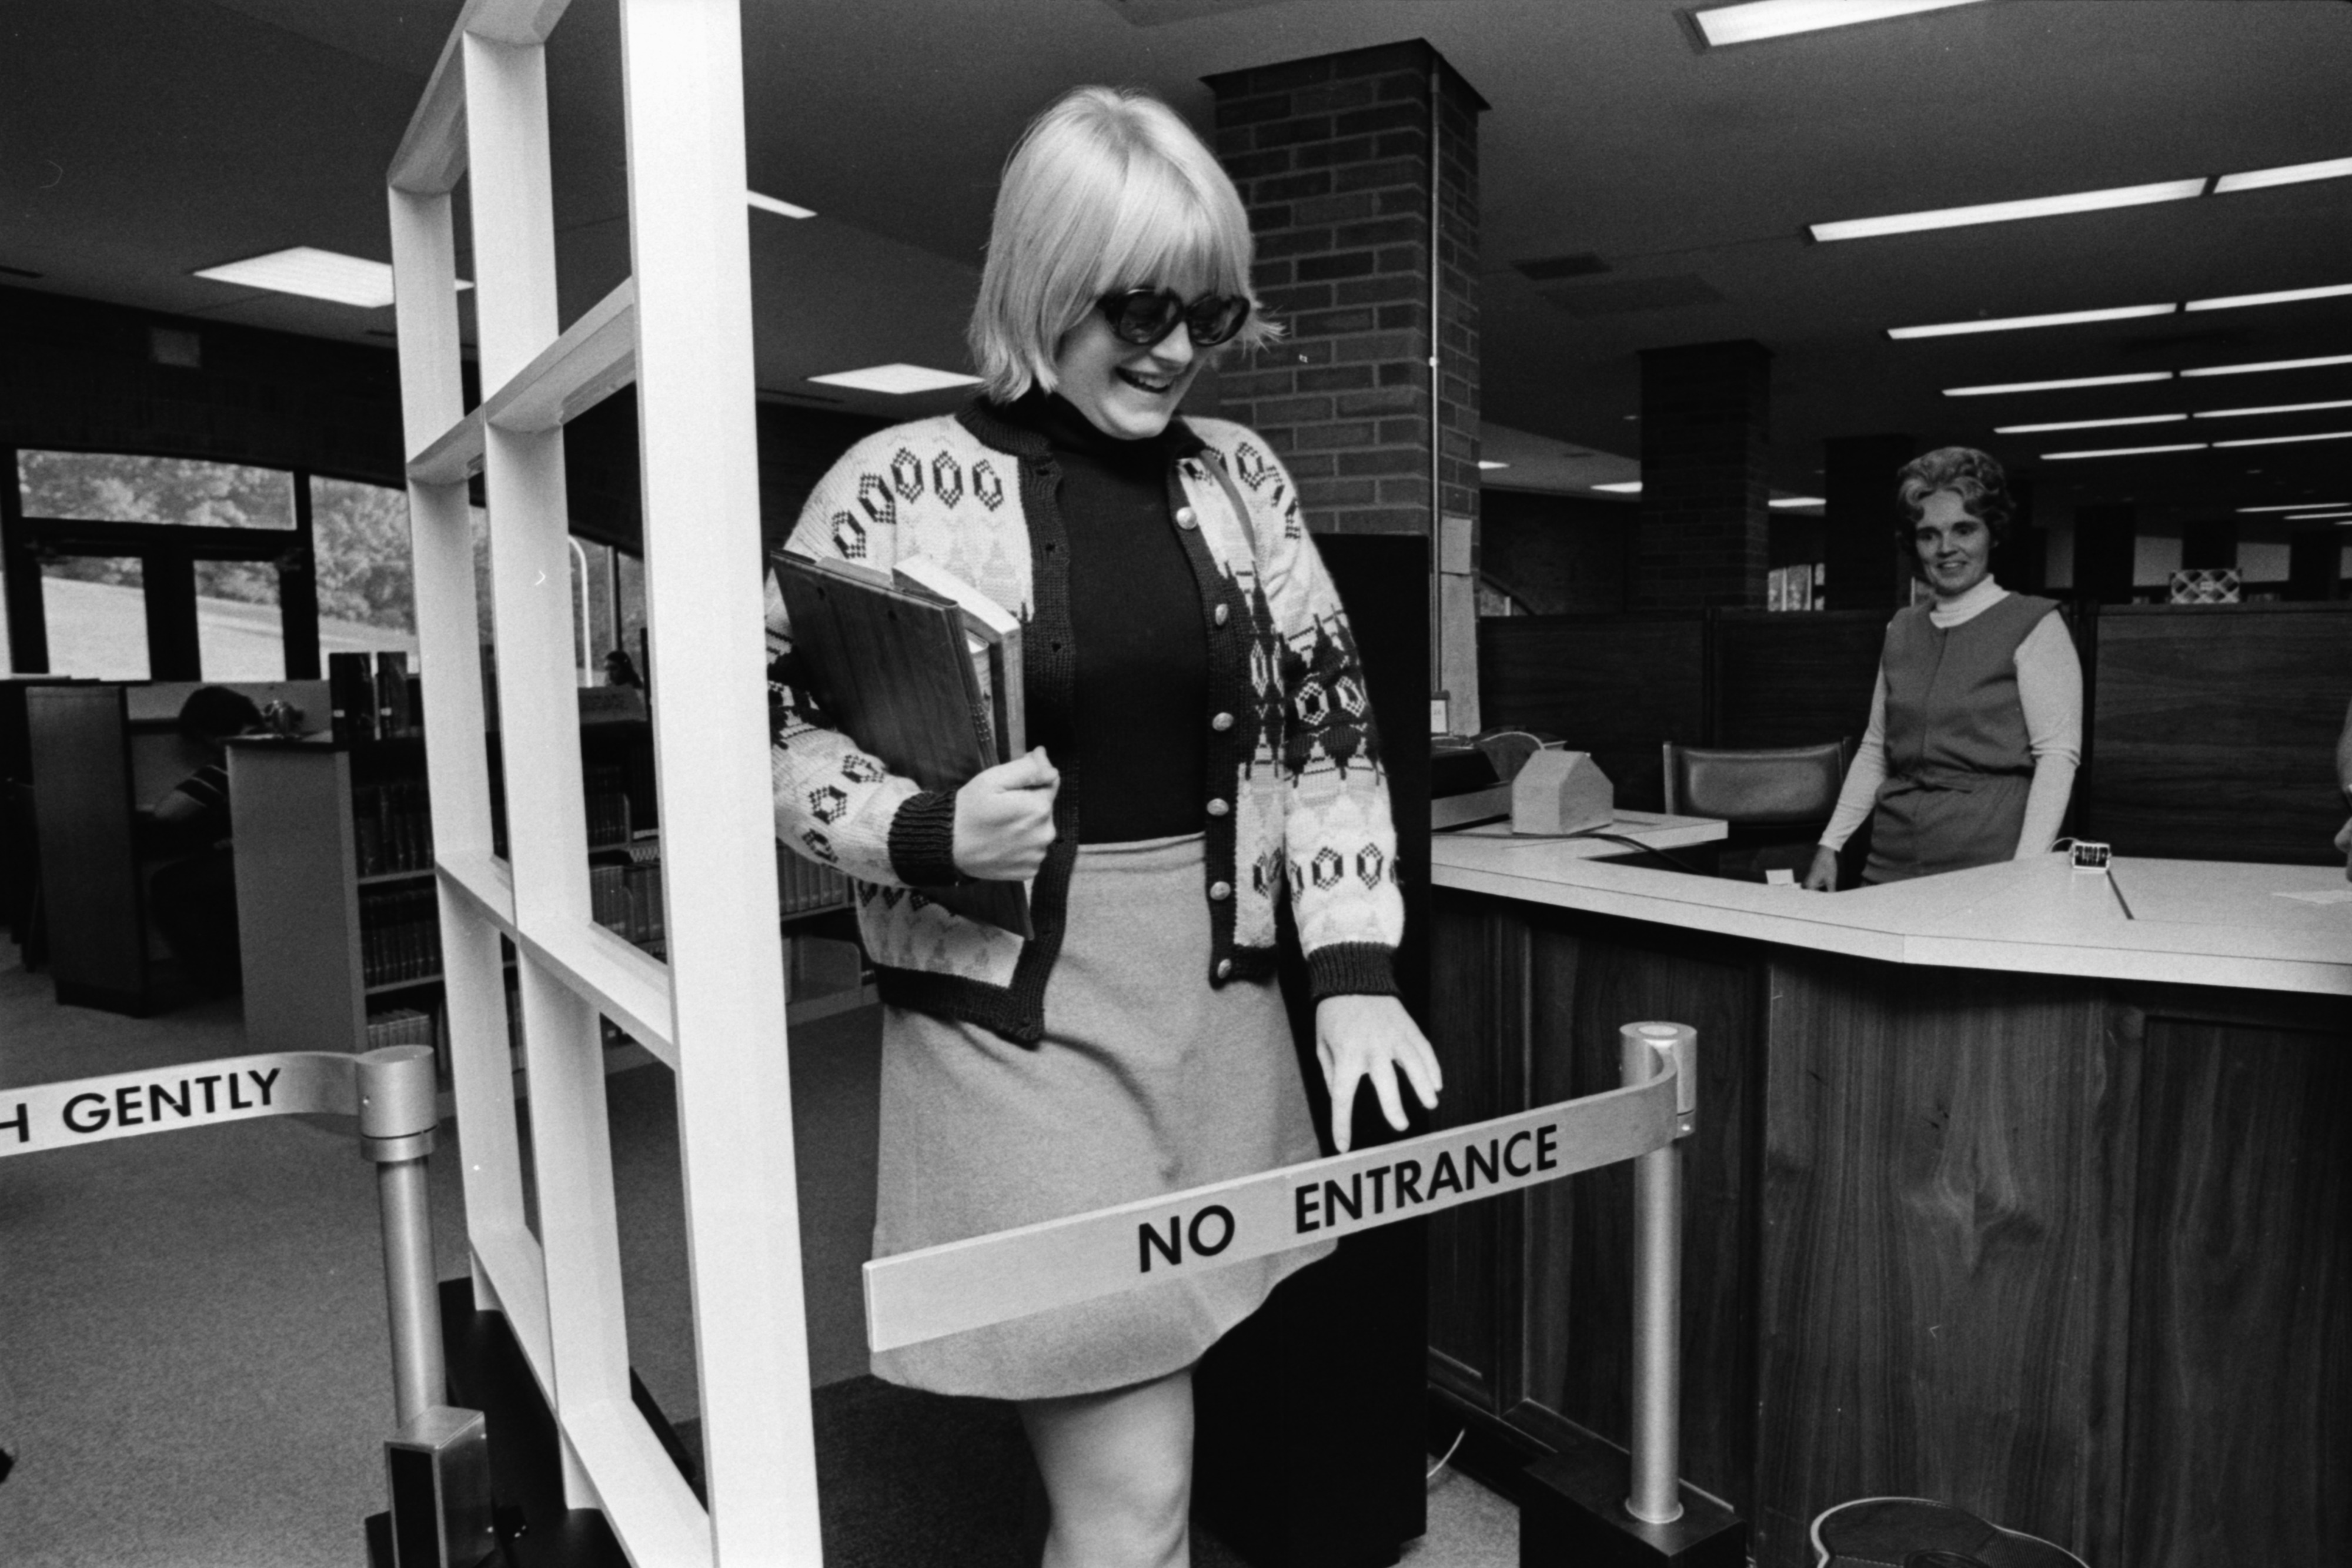 New Sensor-Operated Buzzer Alarm in the Huron High School Library, September 1974 image